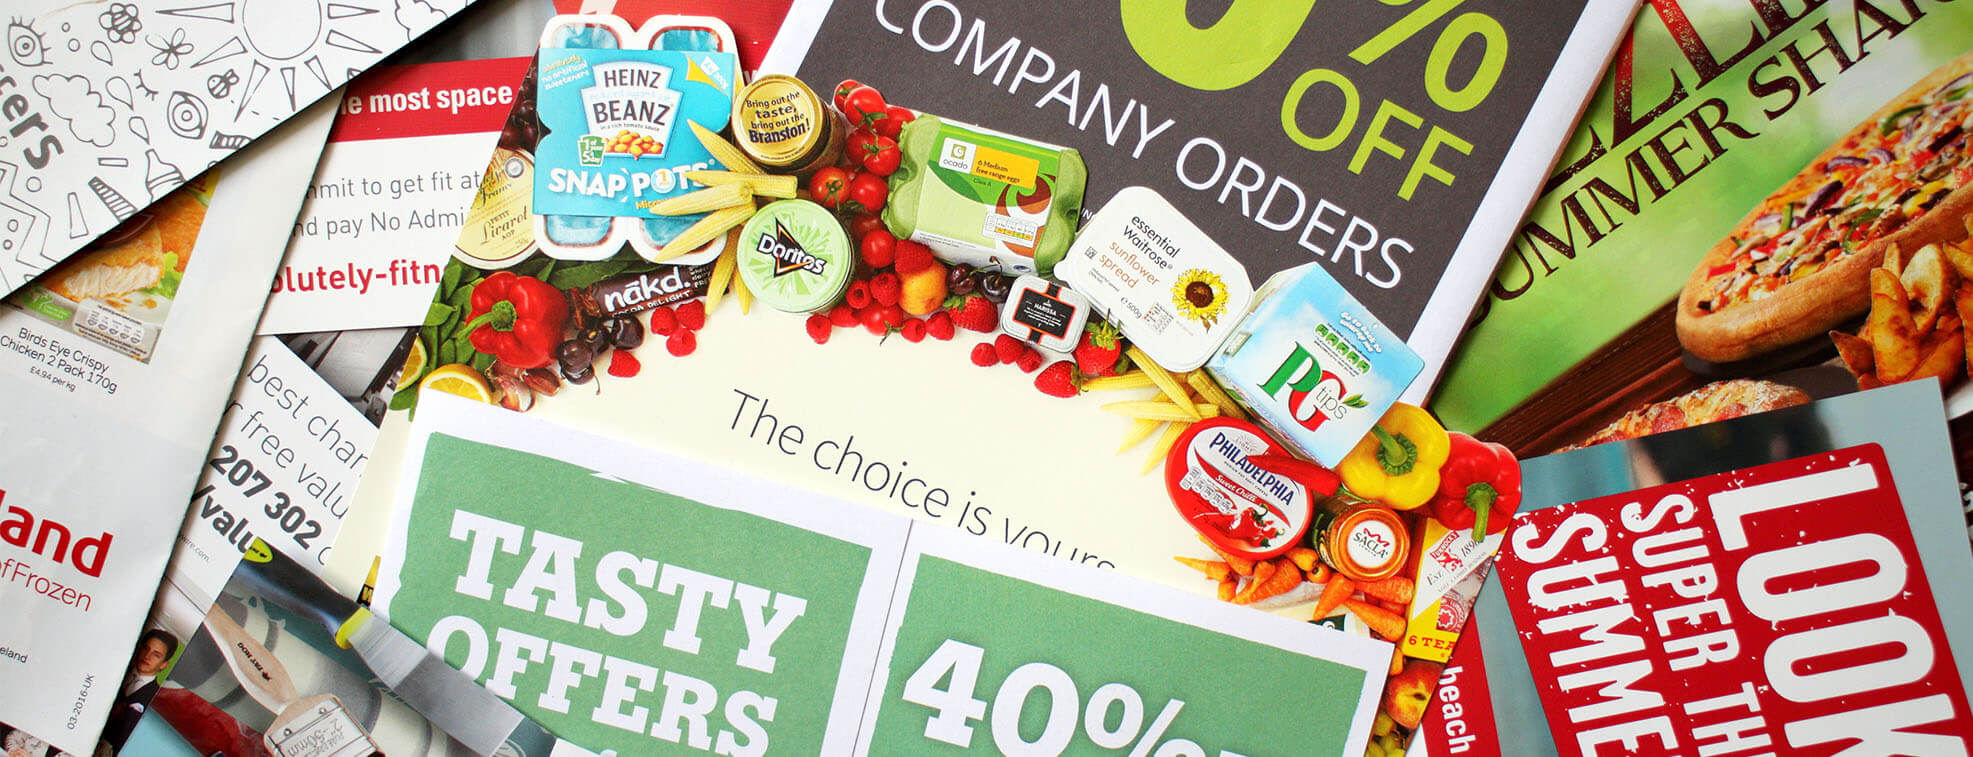 commercial printing used in promotional marketing